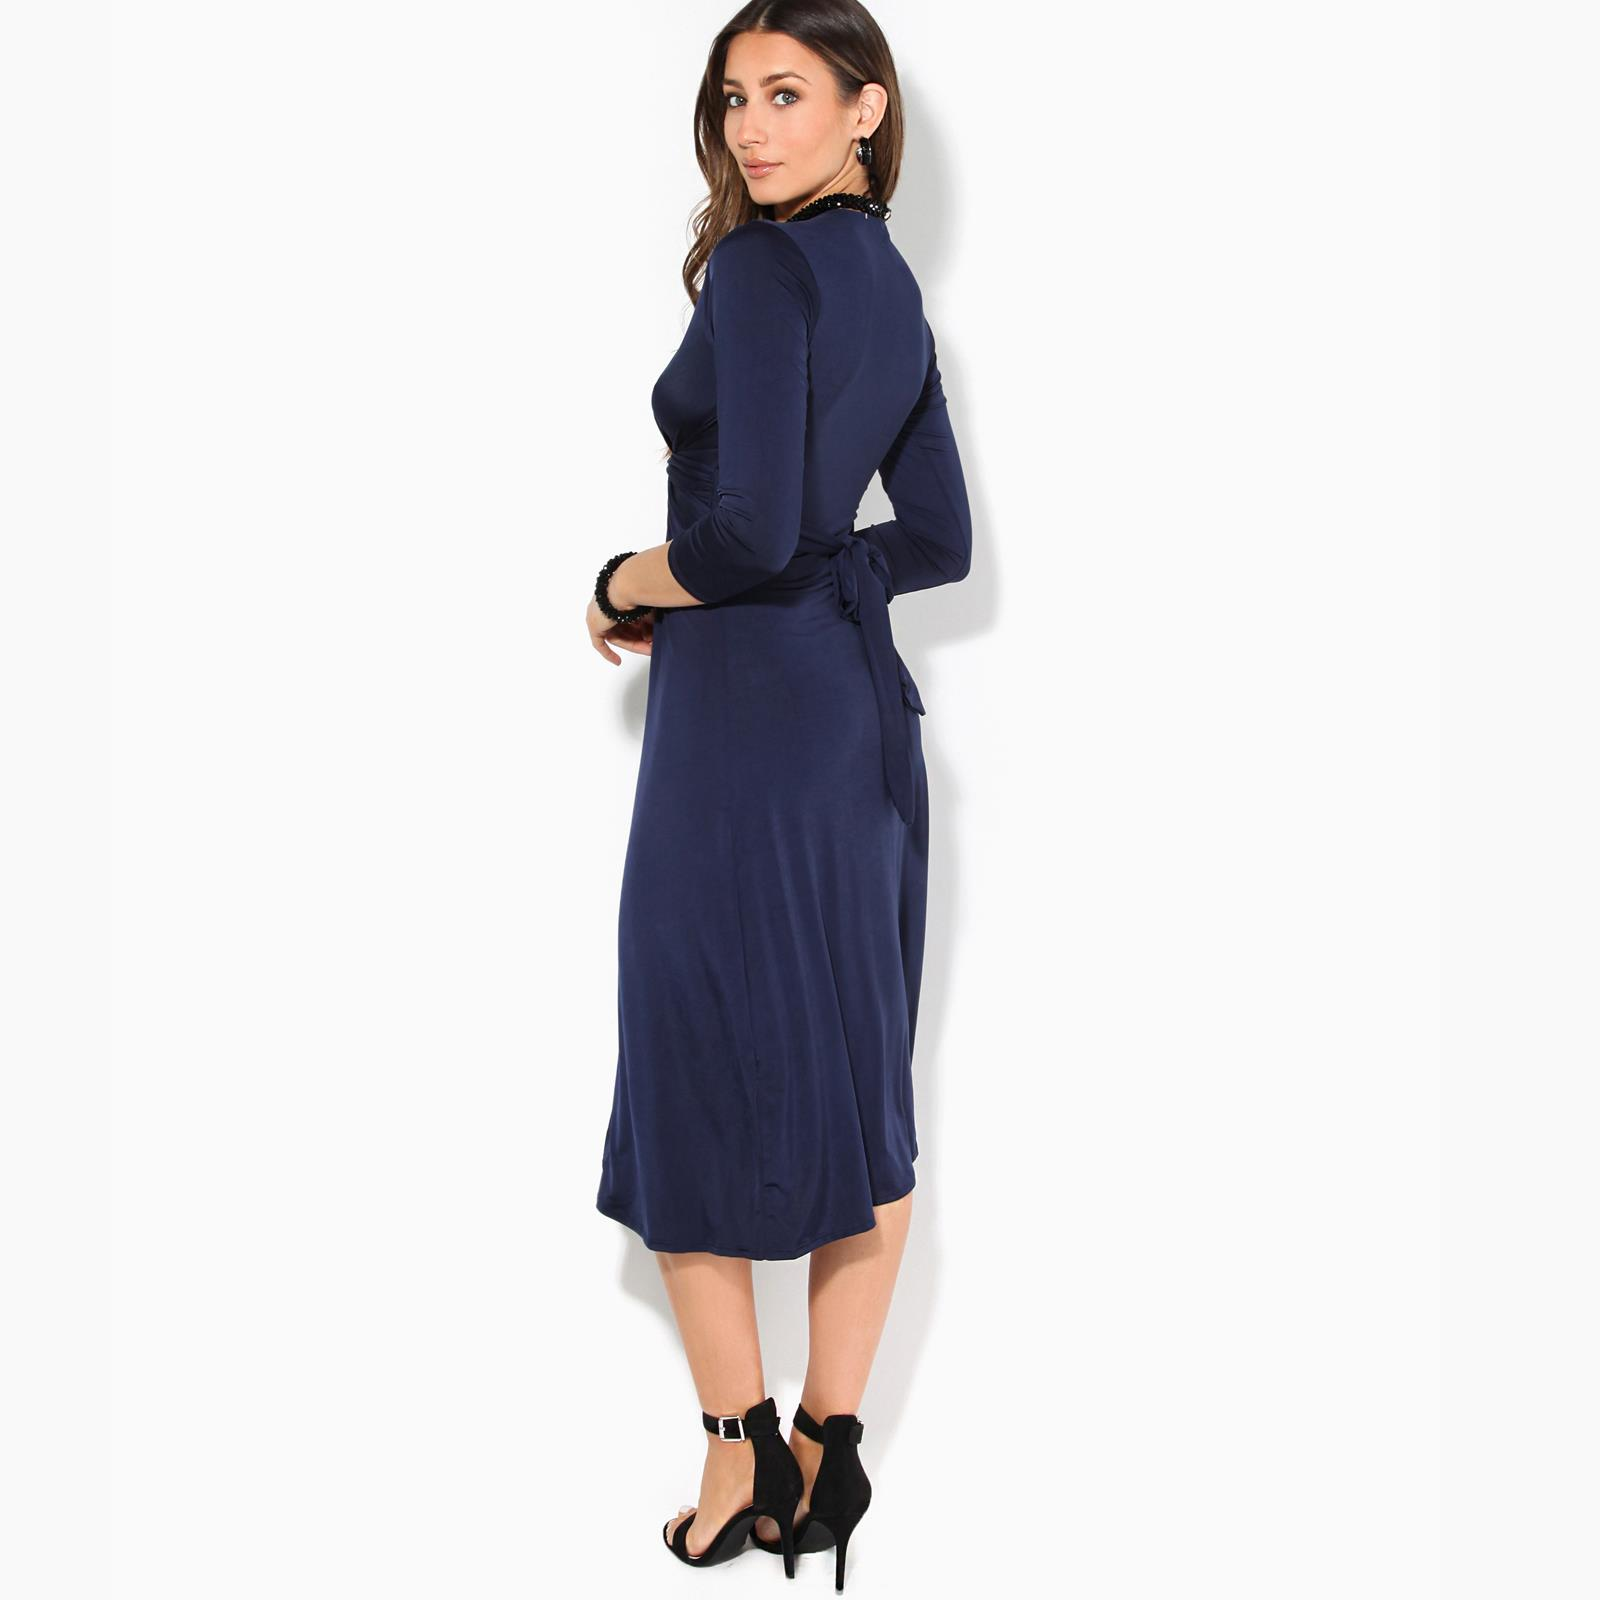 Women-Ladies-V-Neck-Midi-Dress-Knee-Long-A-Line-Skirt-3-4-Sleeve-Knot-Party-Work thumbnail 7